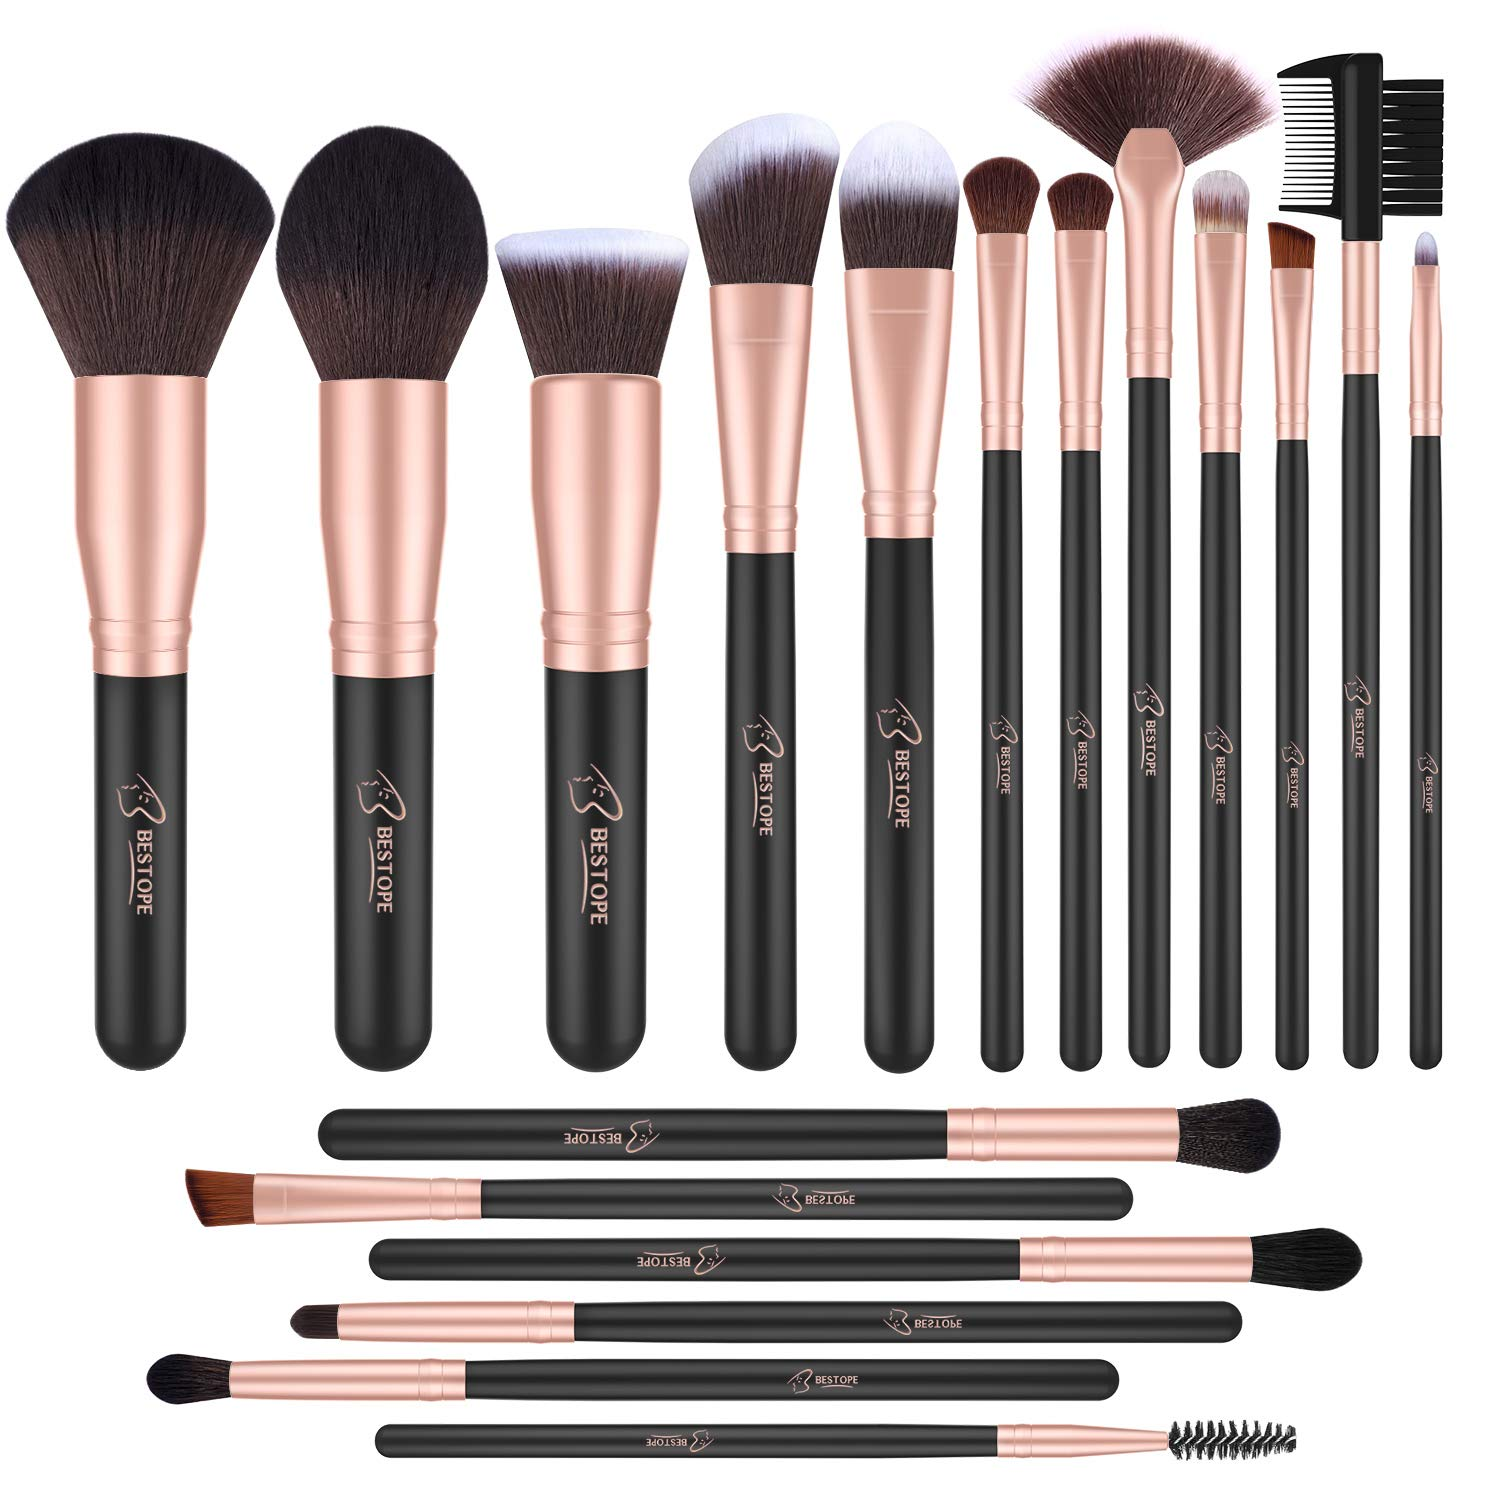 BESTOPE 18 Piece Makeup Brushes Set Premium Kabuki Brushes Synthetic Foundation Blending Blush Face Eyeliner Shadow Brow Concealer Lip Brush Tool Beauty Collection Cosmetic Brushes Kit Ltd.